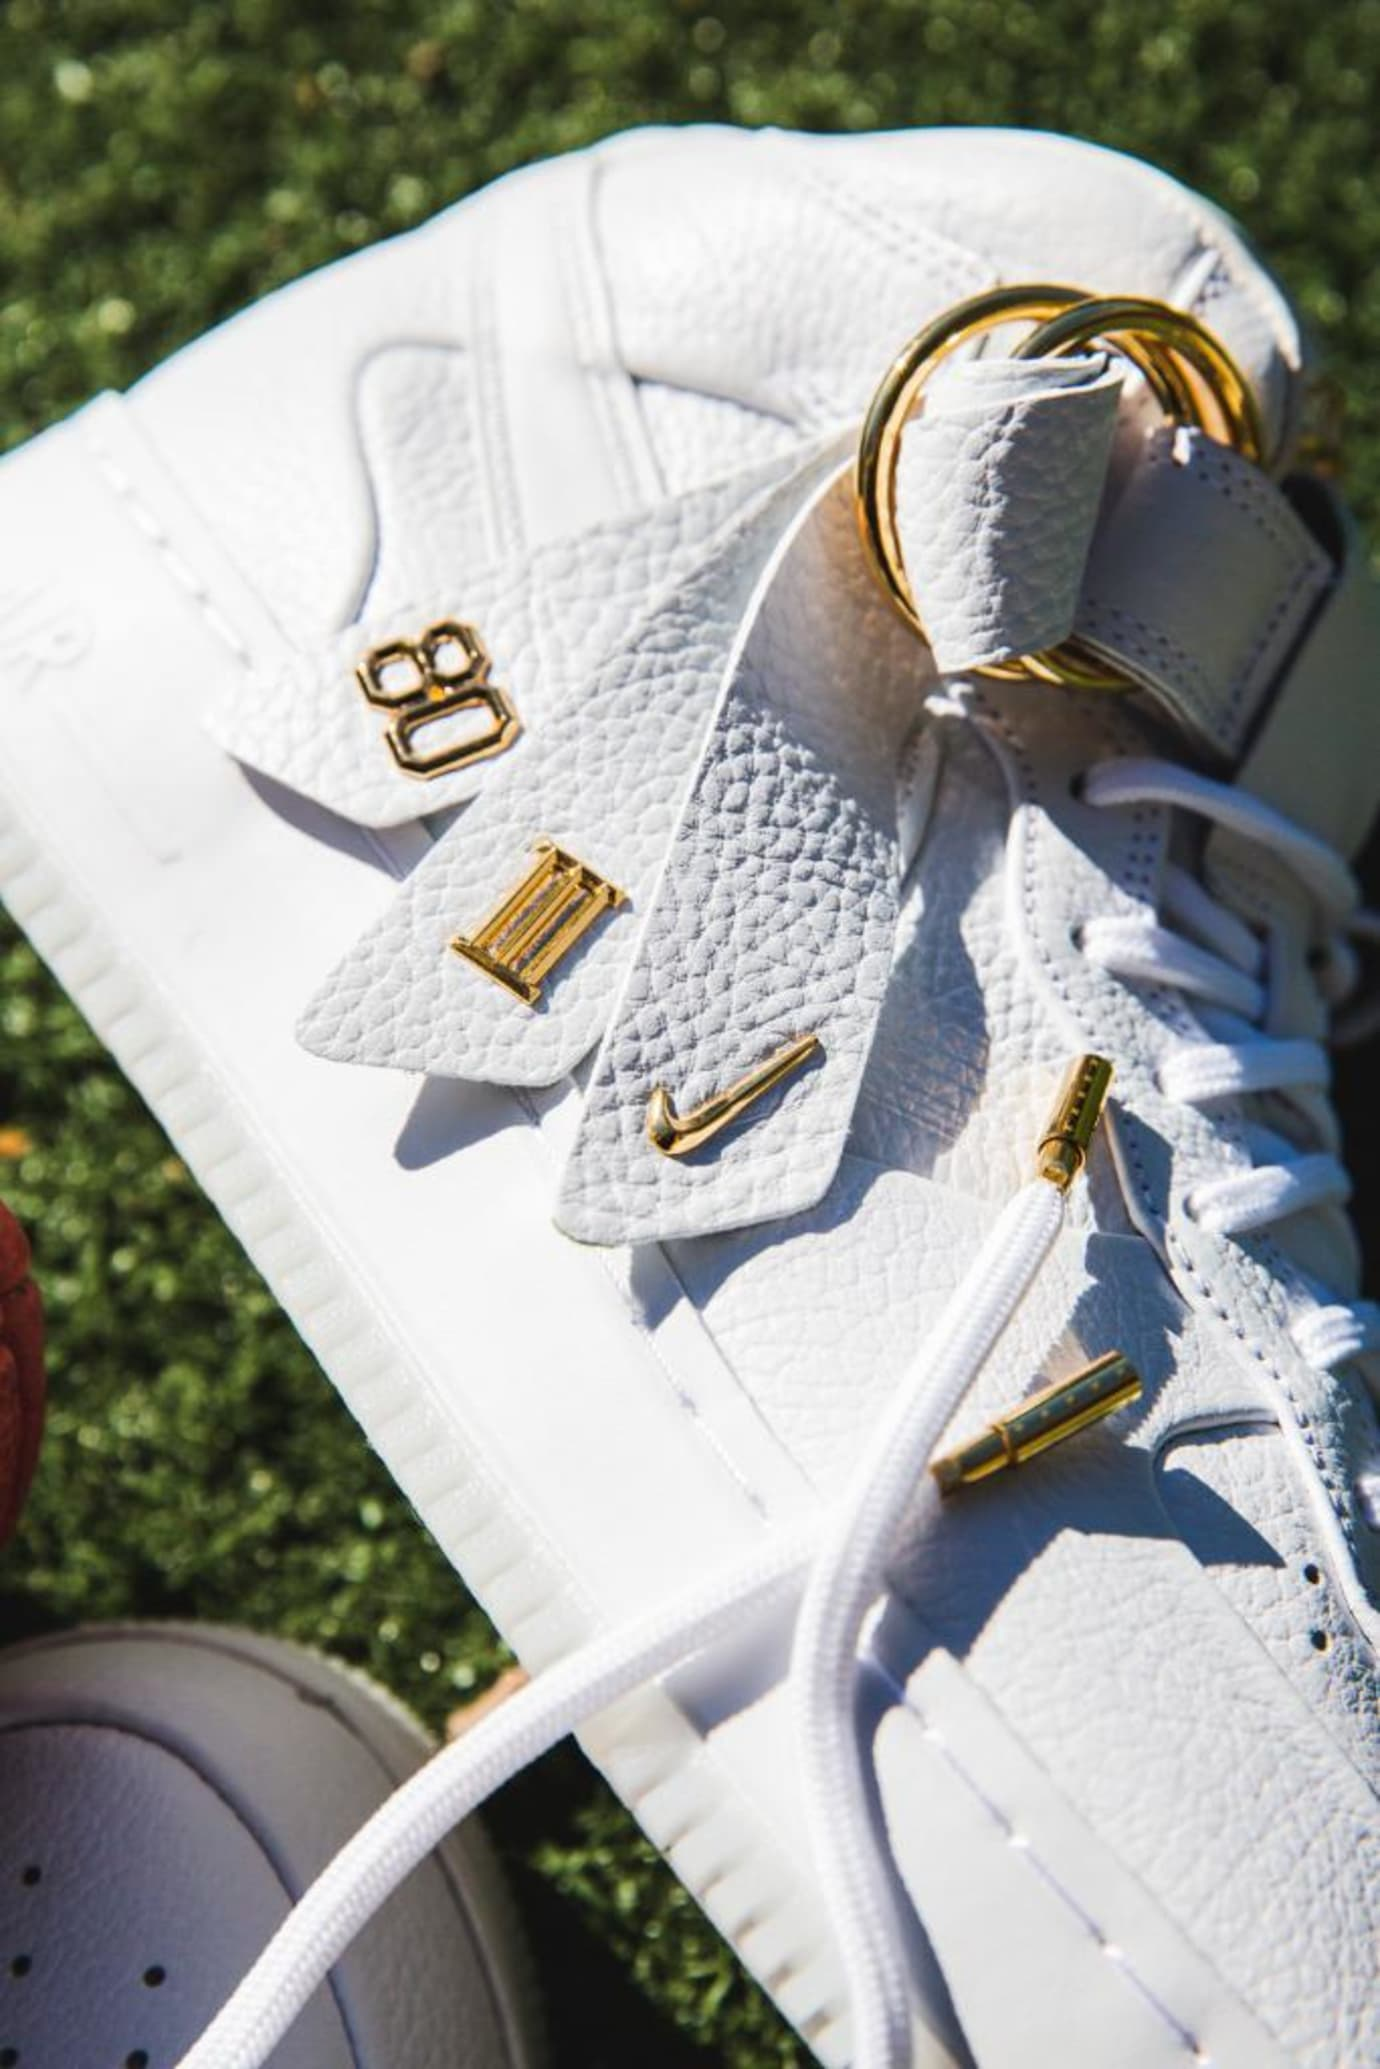 Victor Cruz x Nike Air Force 1 Mid CMFT QS (Strap Detail)